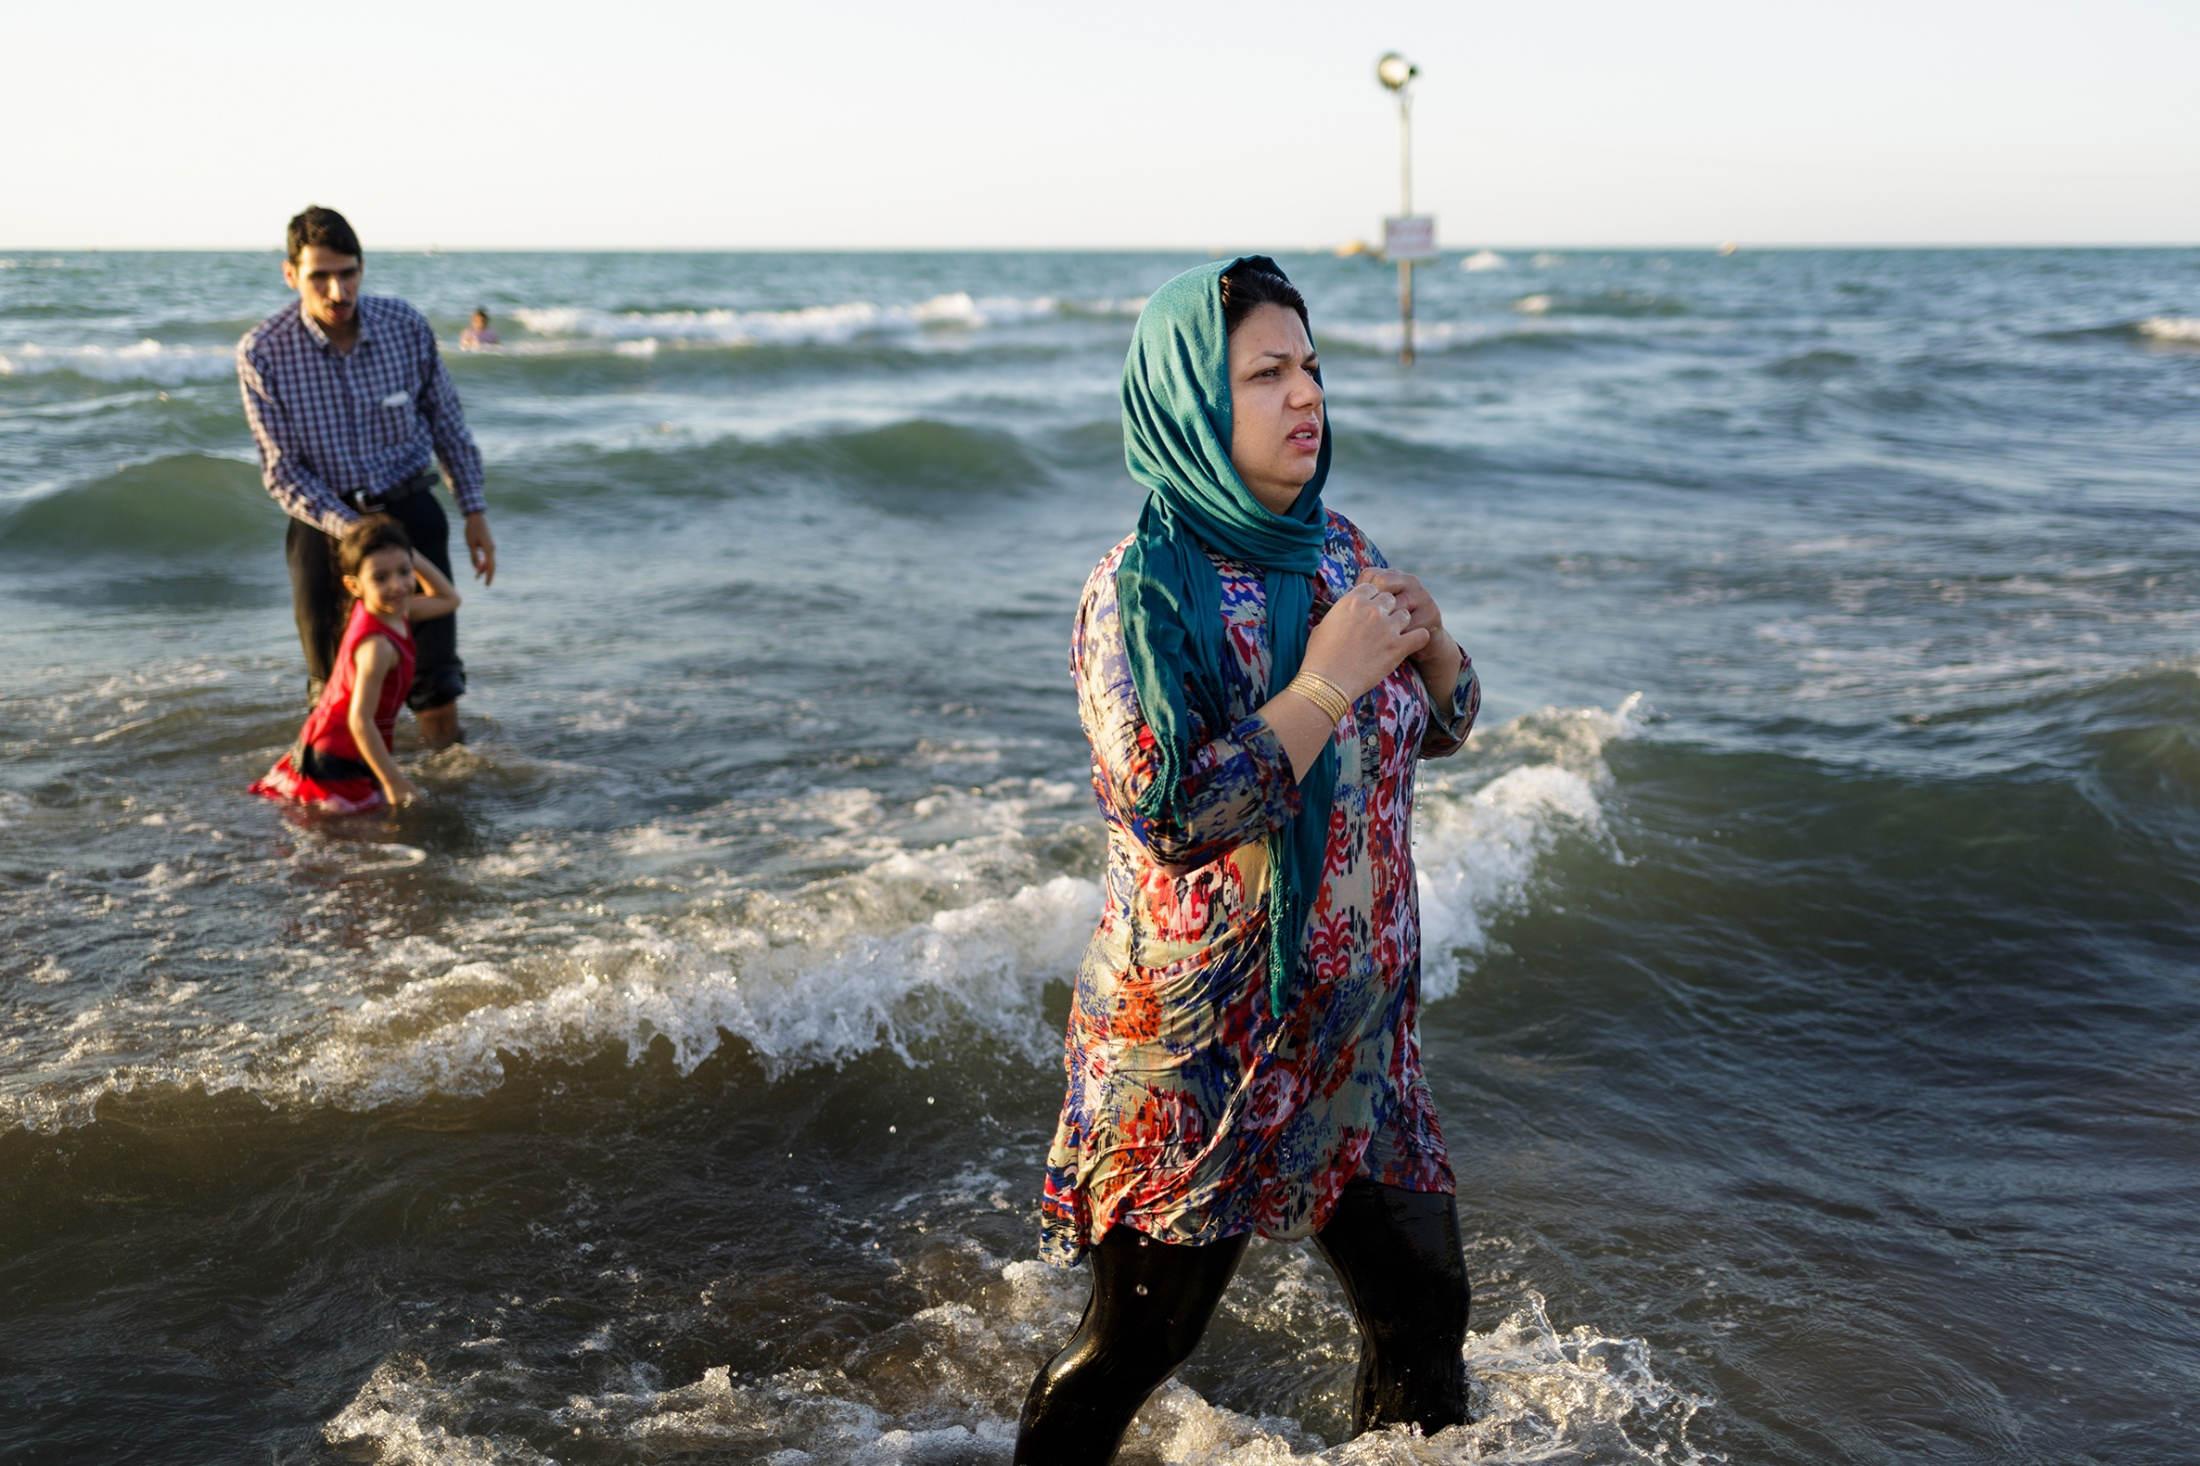 Women are not allowed to swim in public in swimwear, so beaches have separate areas for them. However, they often go into the water clothed, because these areas are sometimes closed or too far away.